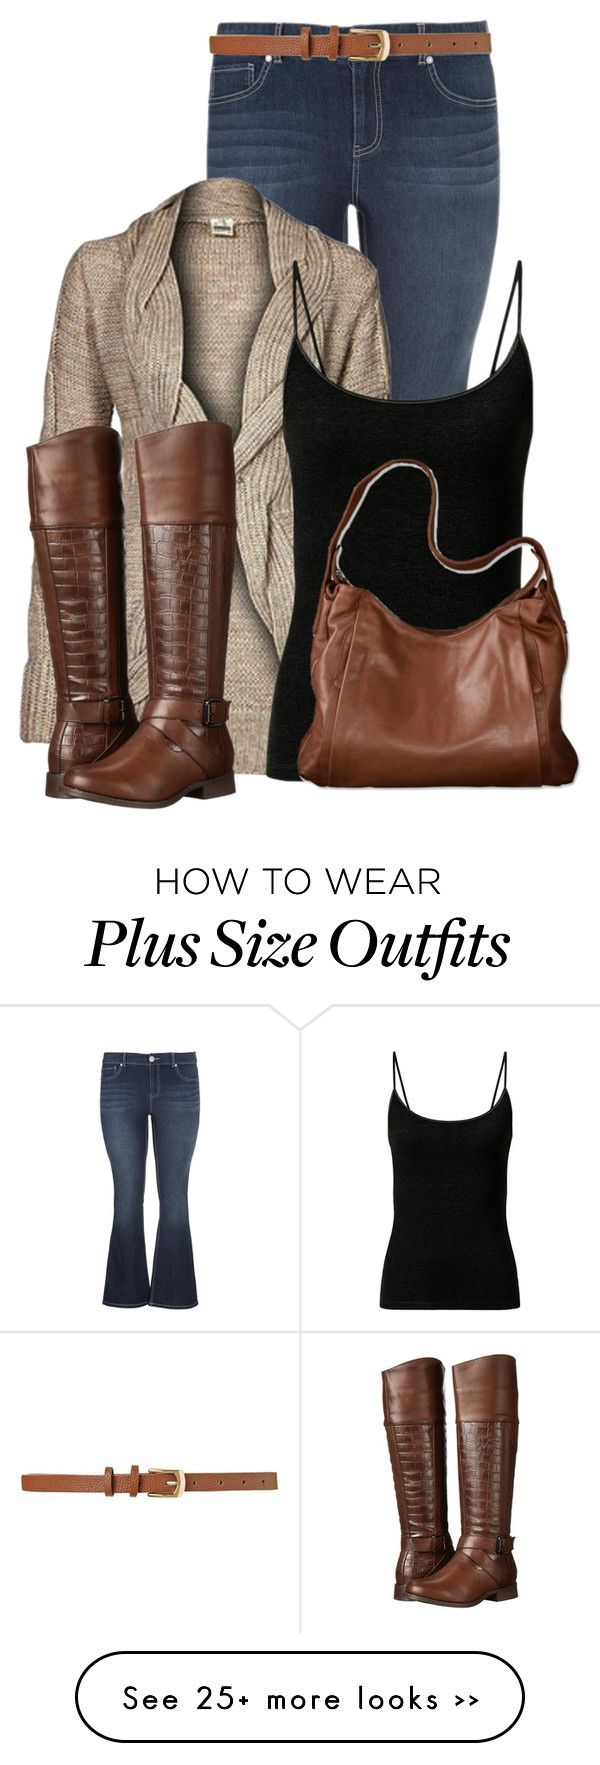 """Untitled #8262"" by nanette-253 on Polyvore"